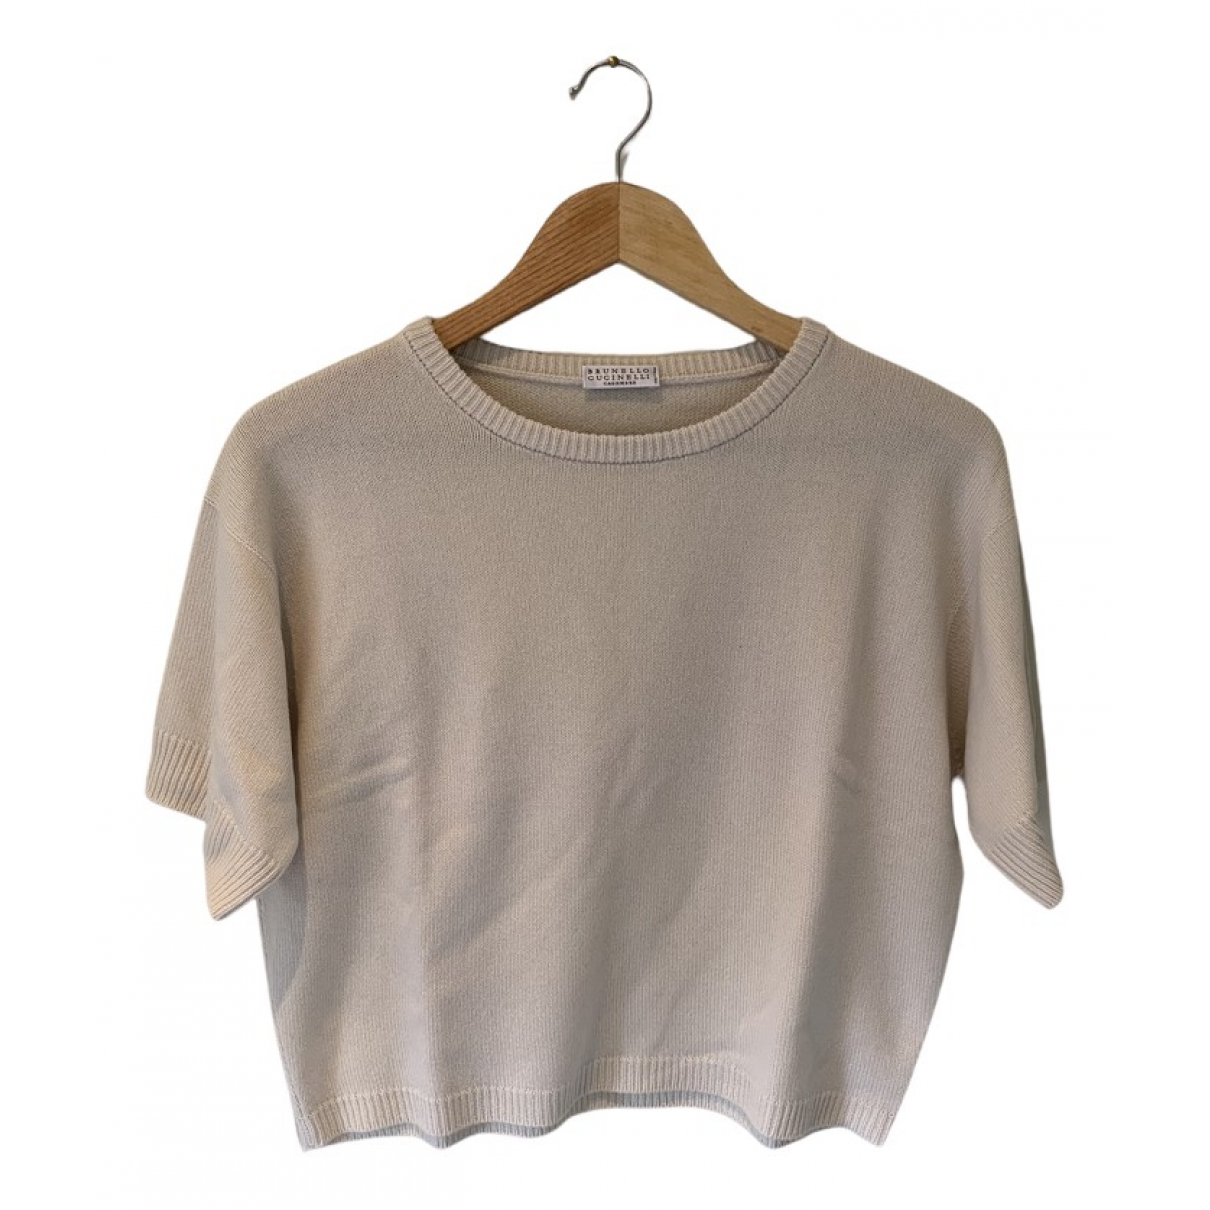 Brunello Cucinelli N Beige Cashmere Knitwear for Women S International